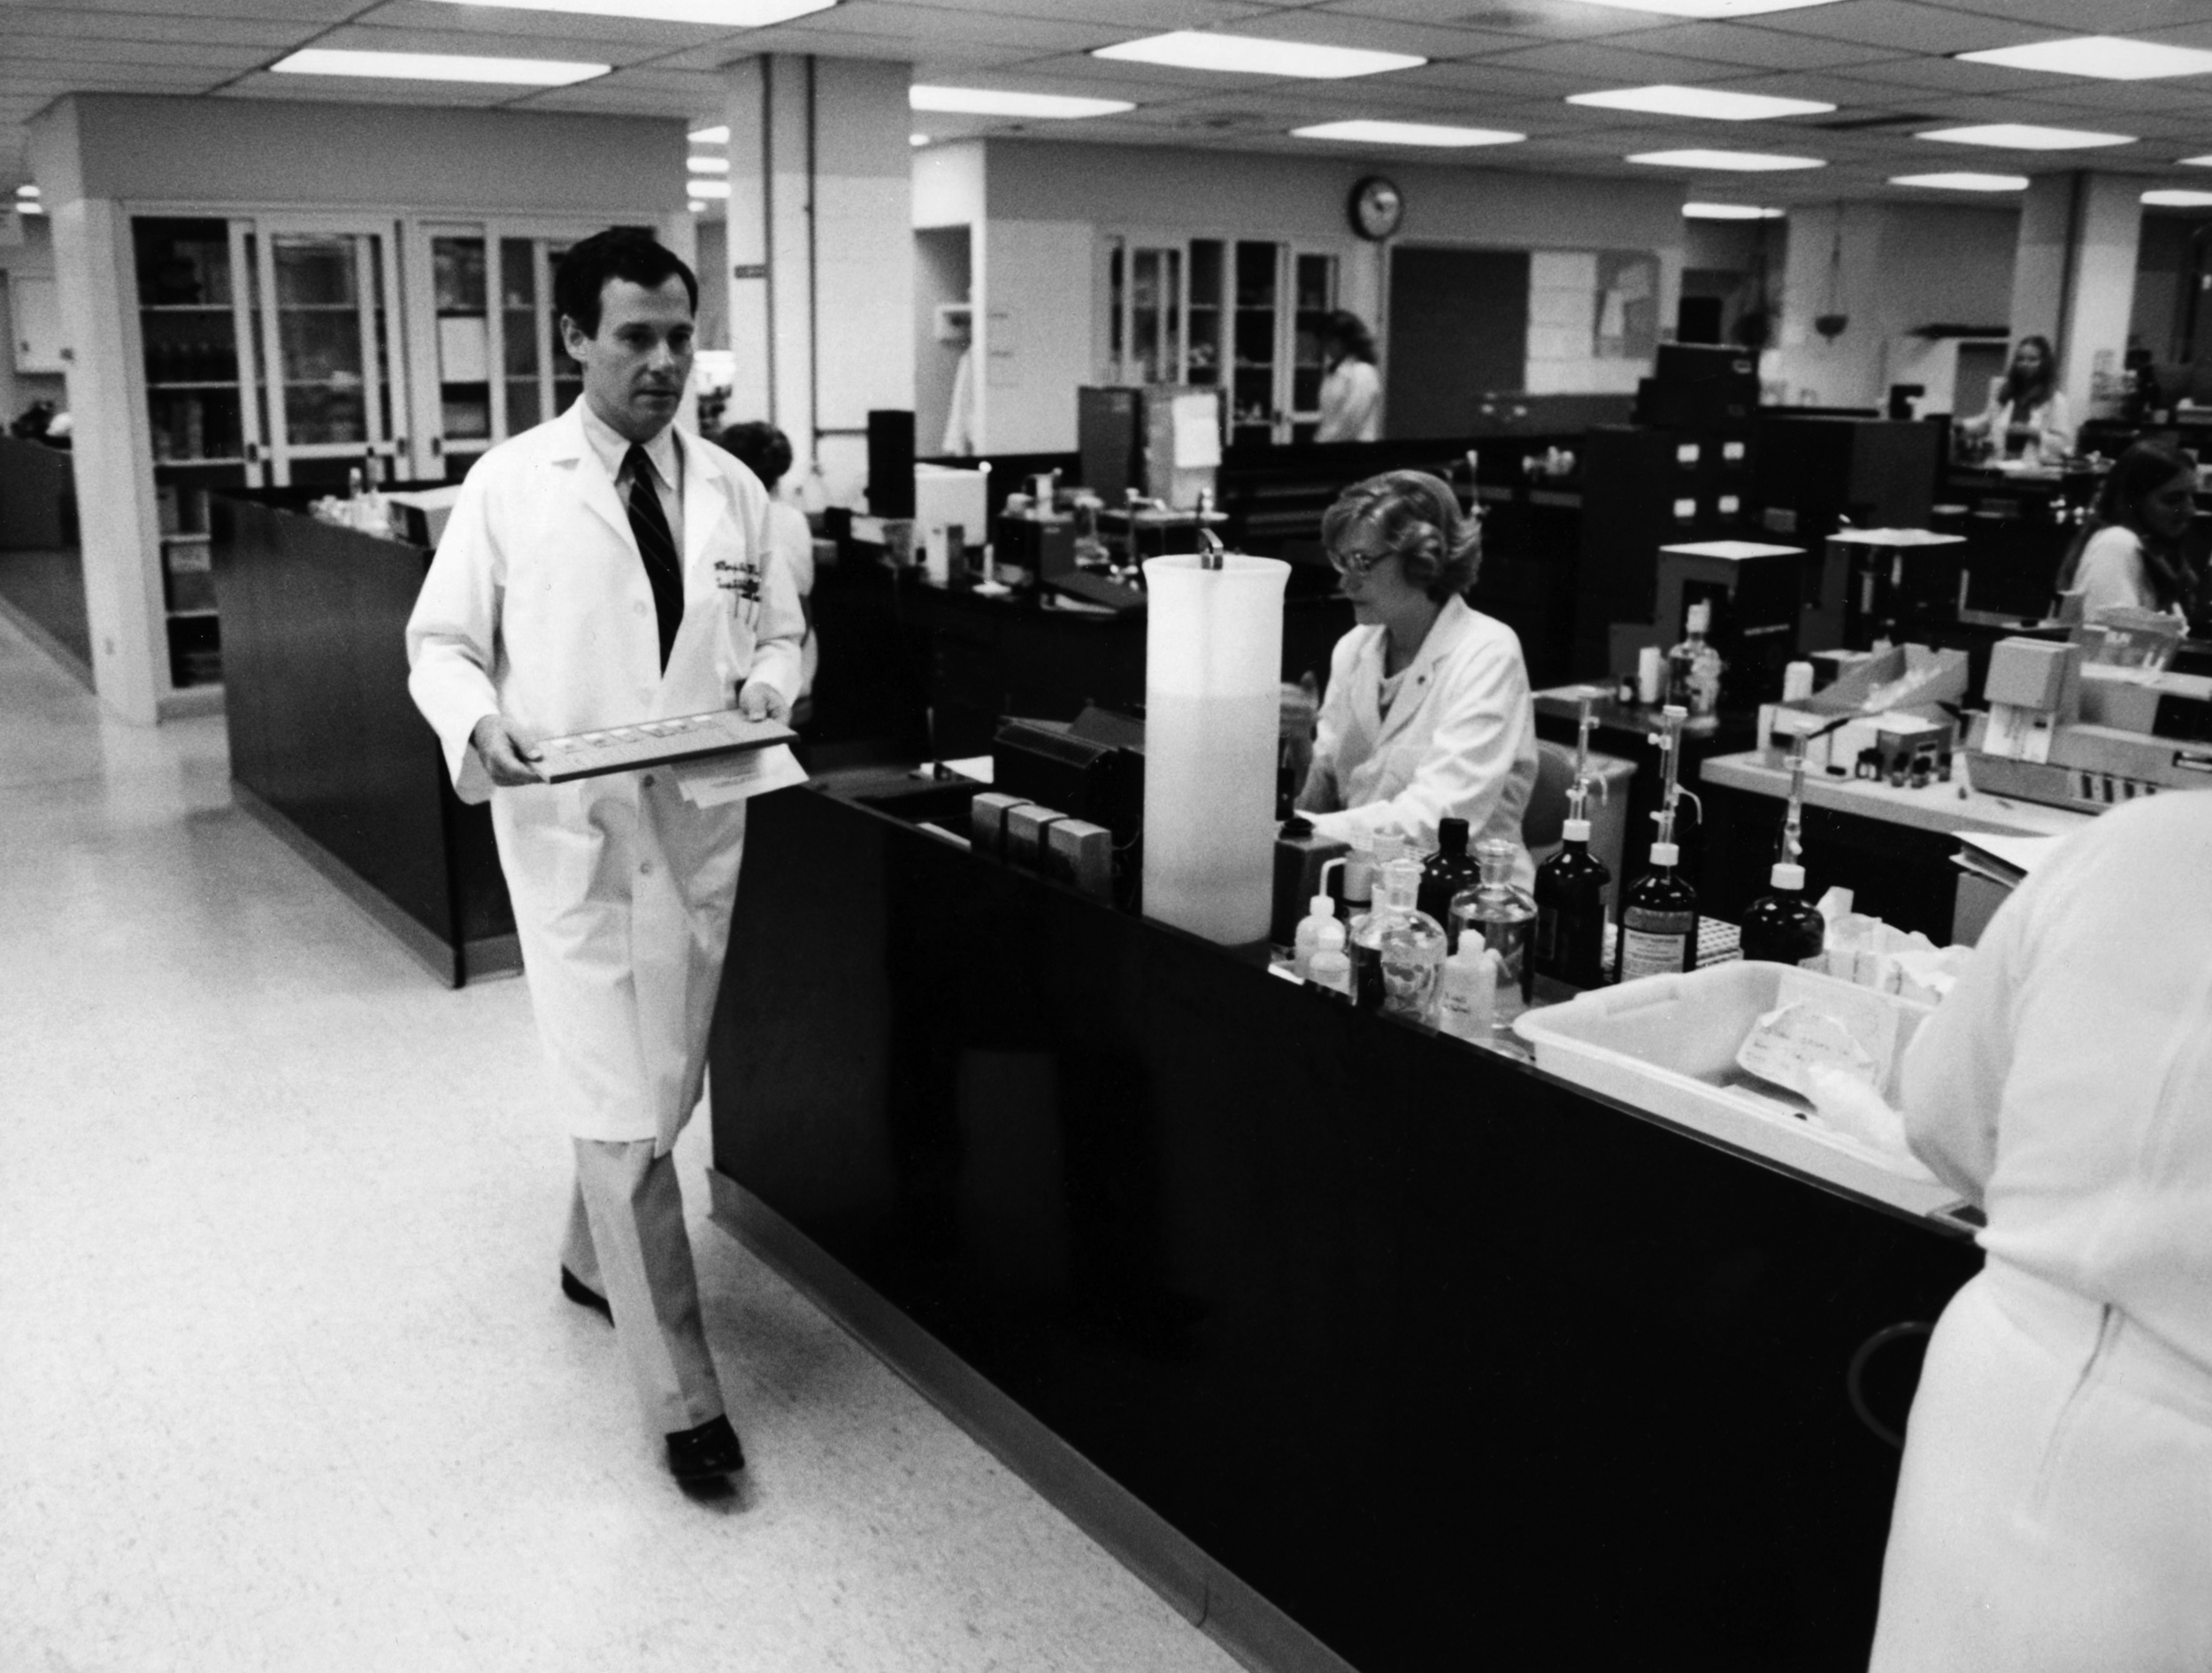 Dr. Milton Finegold in the pathology lab in the 1980s.